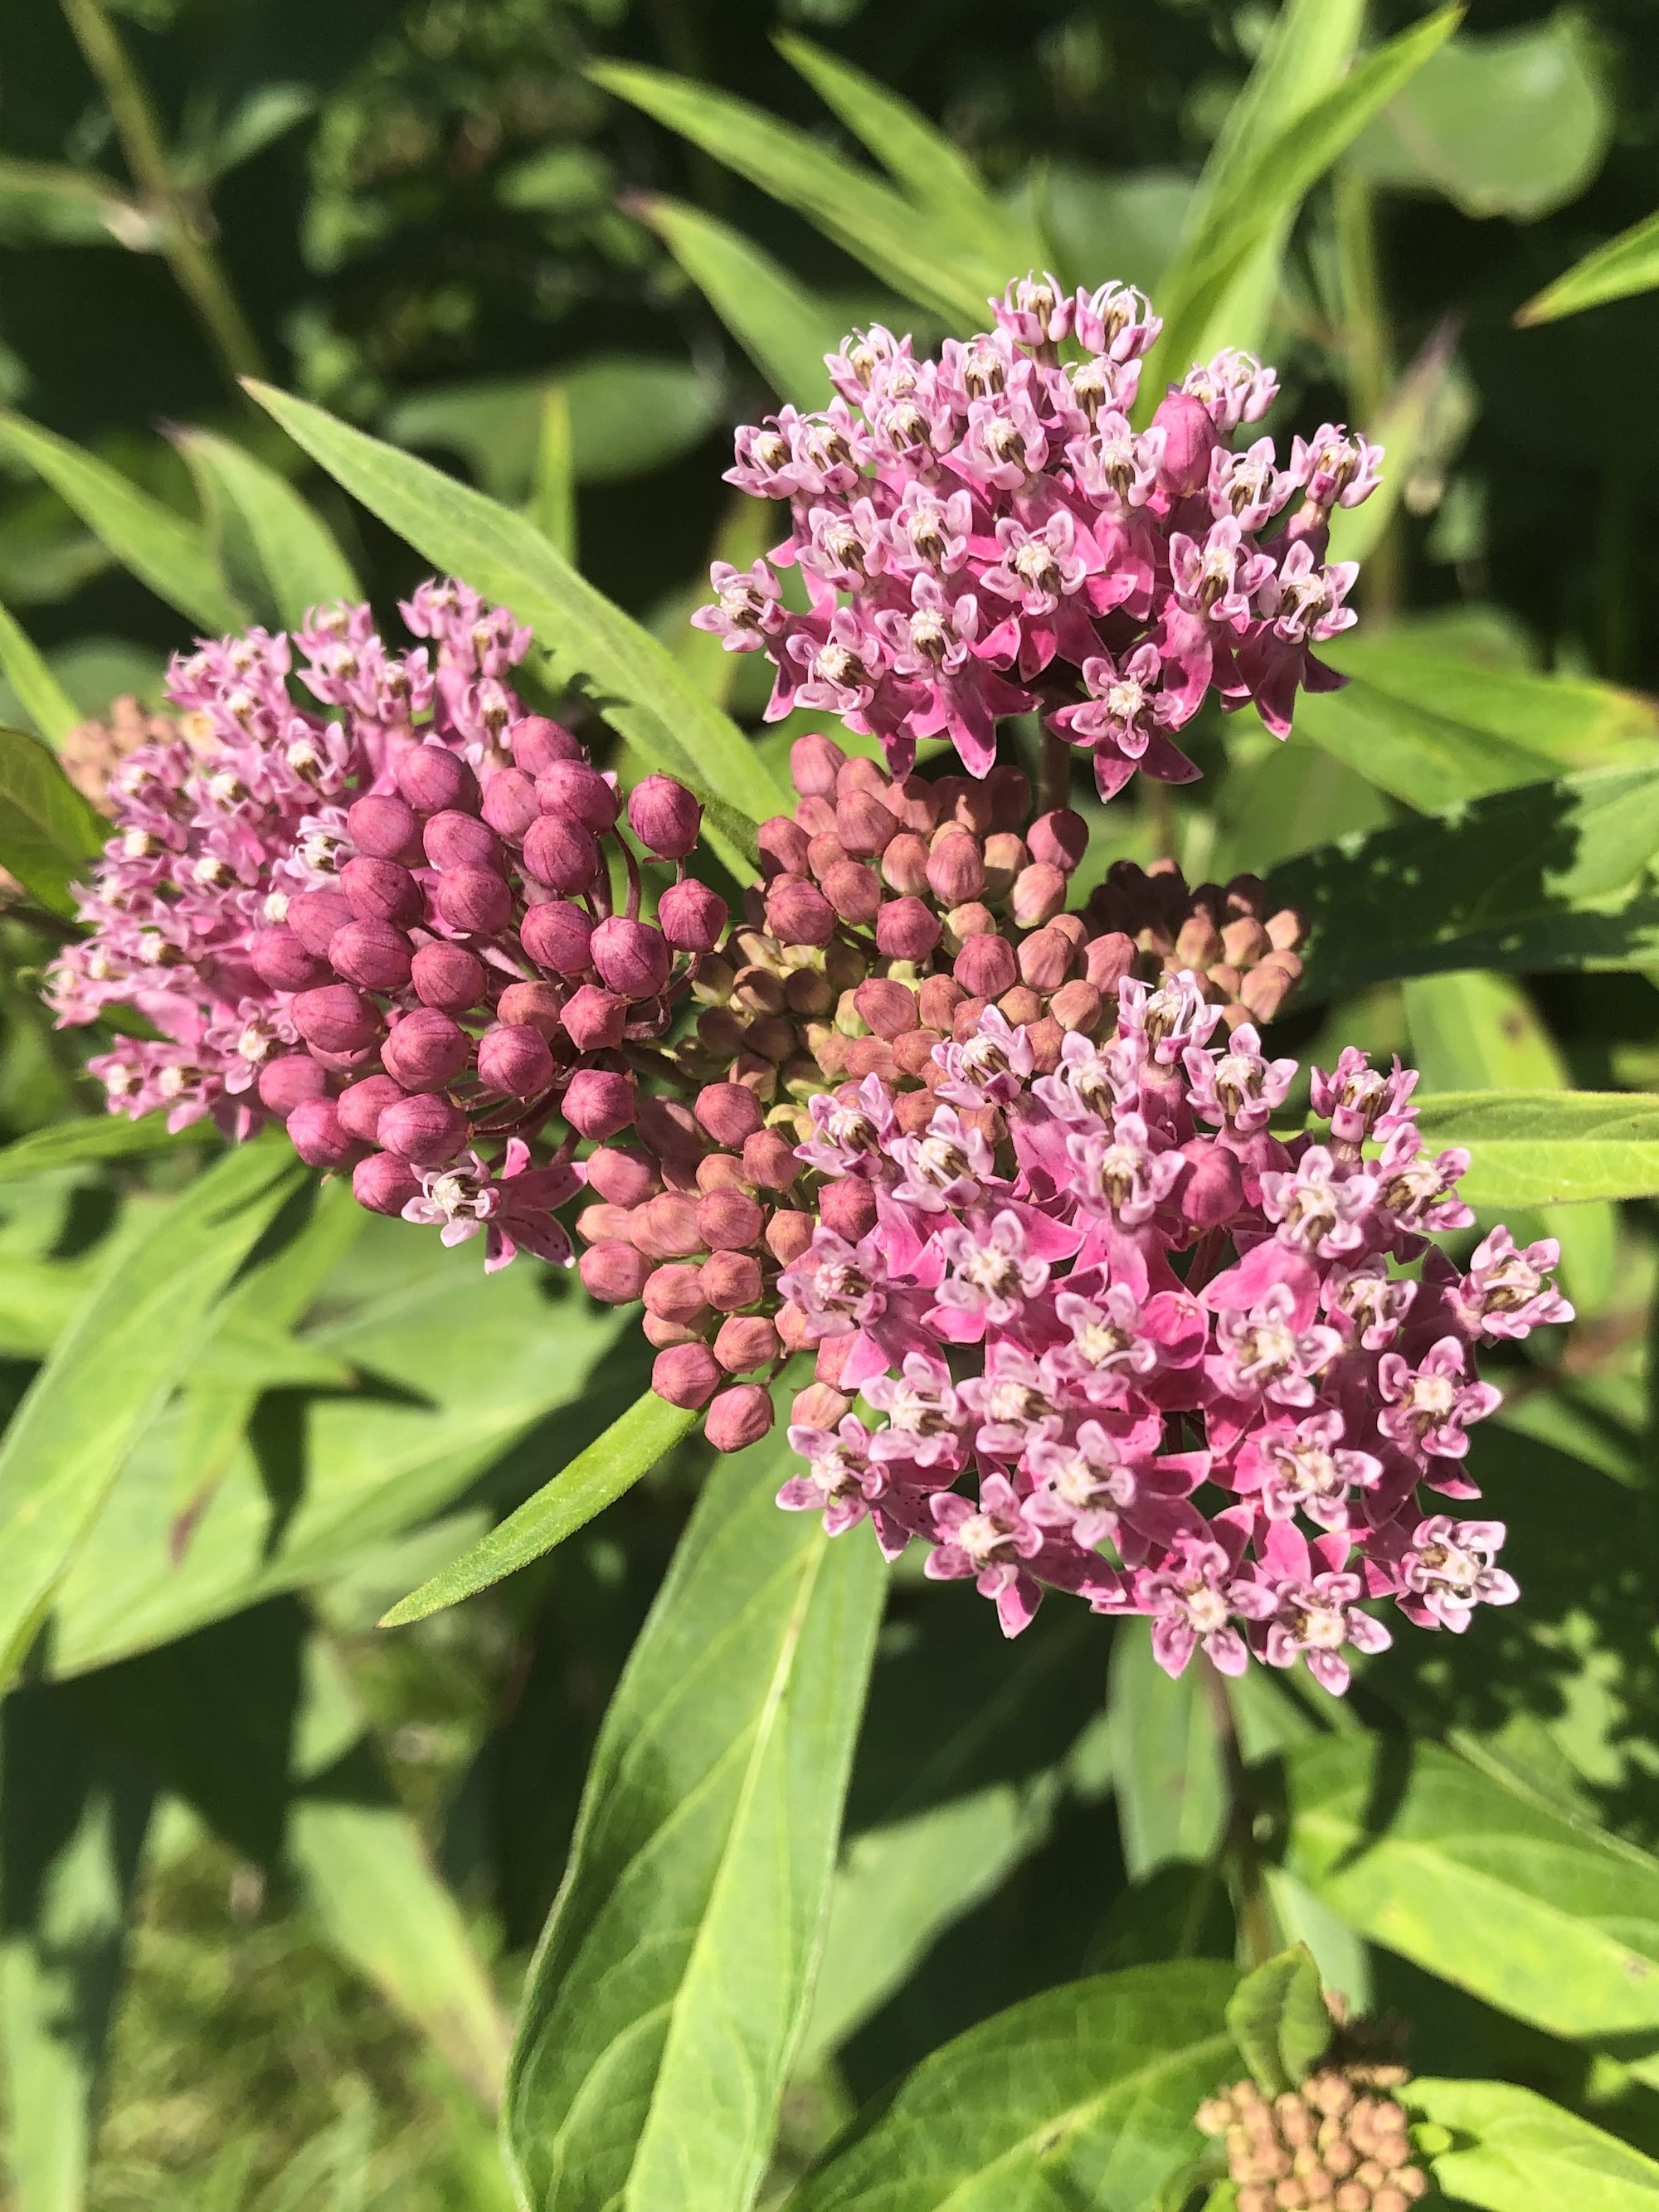 Swamp Milkweed on shore of Lake Wingra in Wingra Park on July 4, 2020.